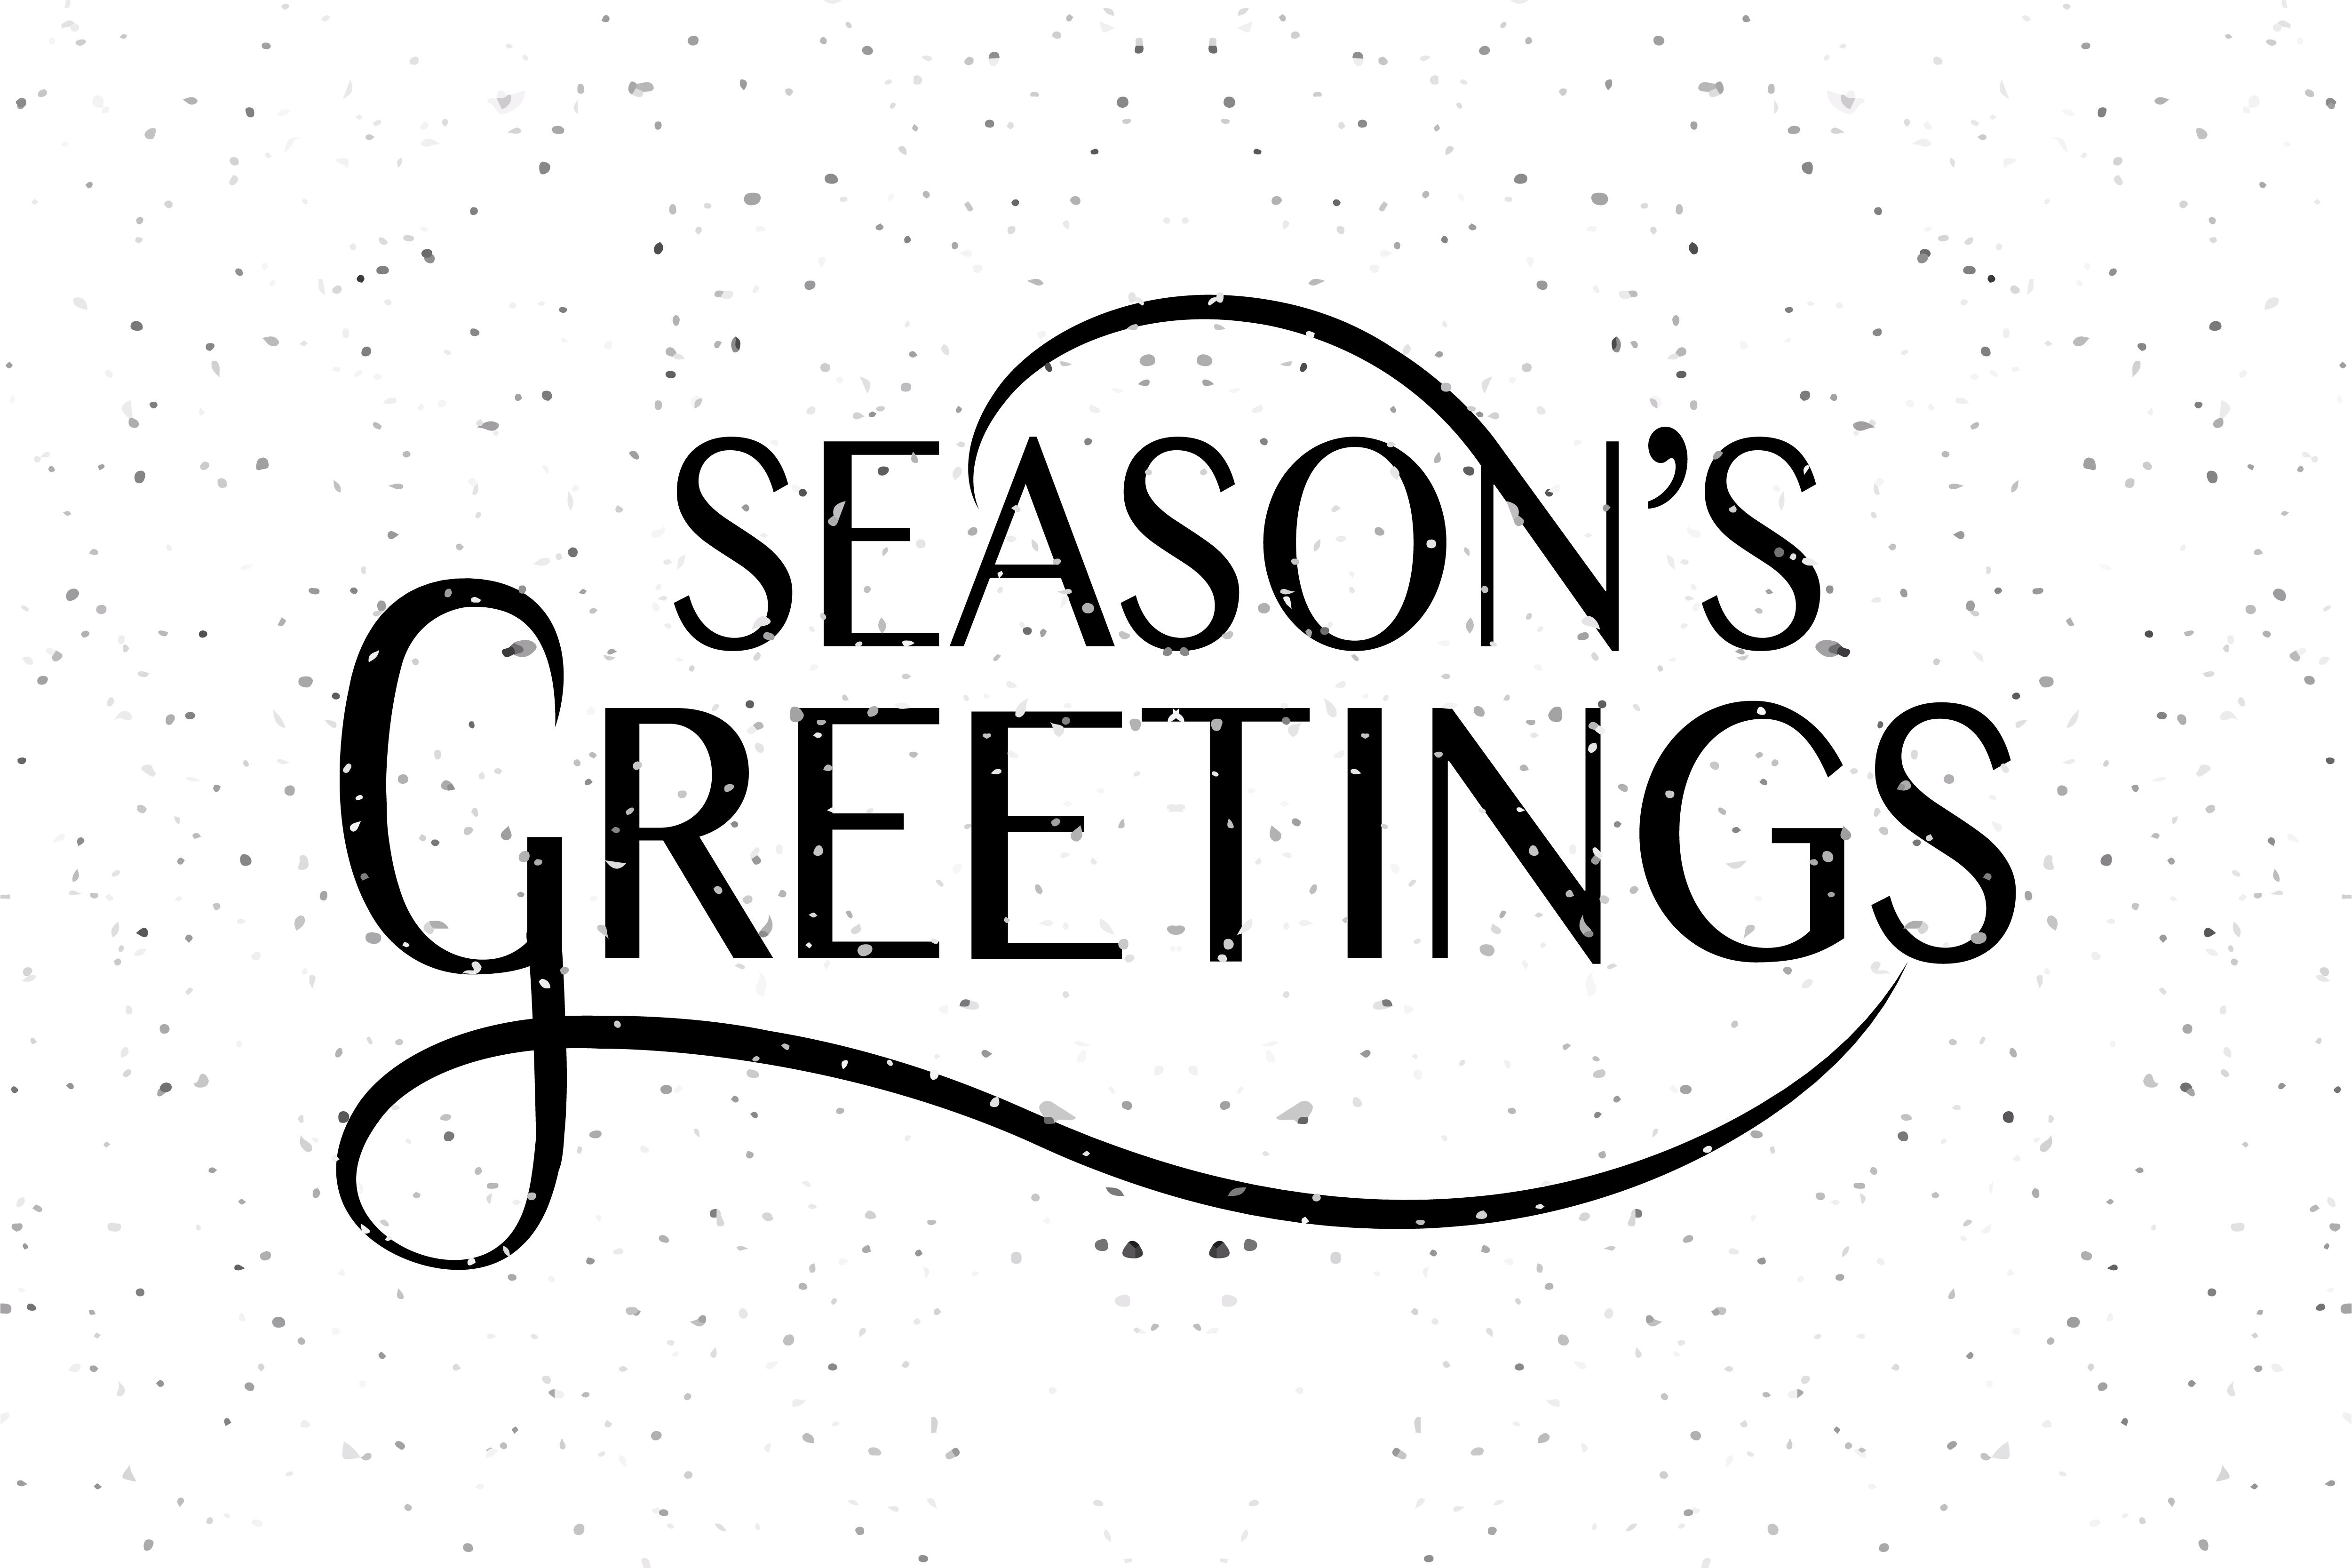 Seasons greetings typography typography card templates and template seasons greetings typography by alps view art on creative market kristyandbryce Images